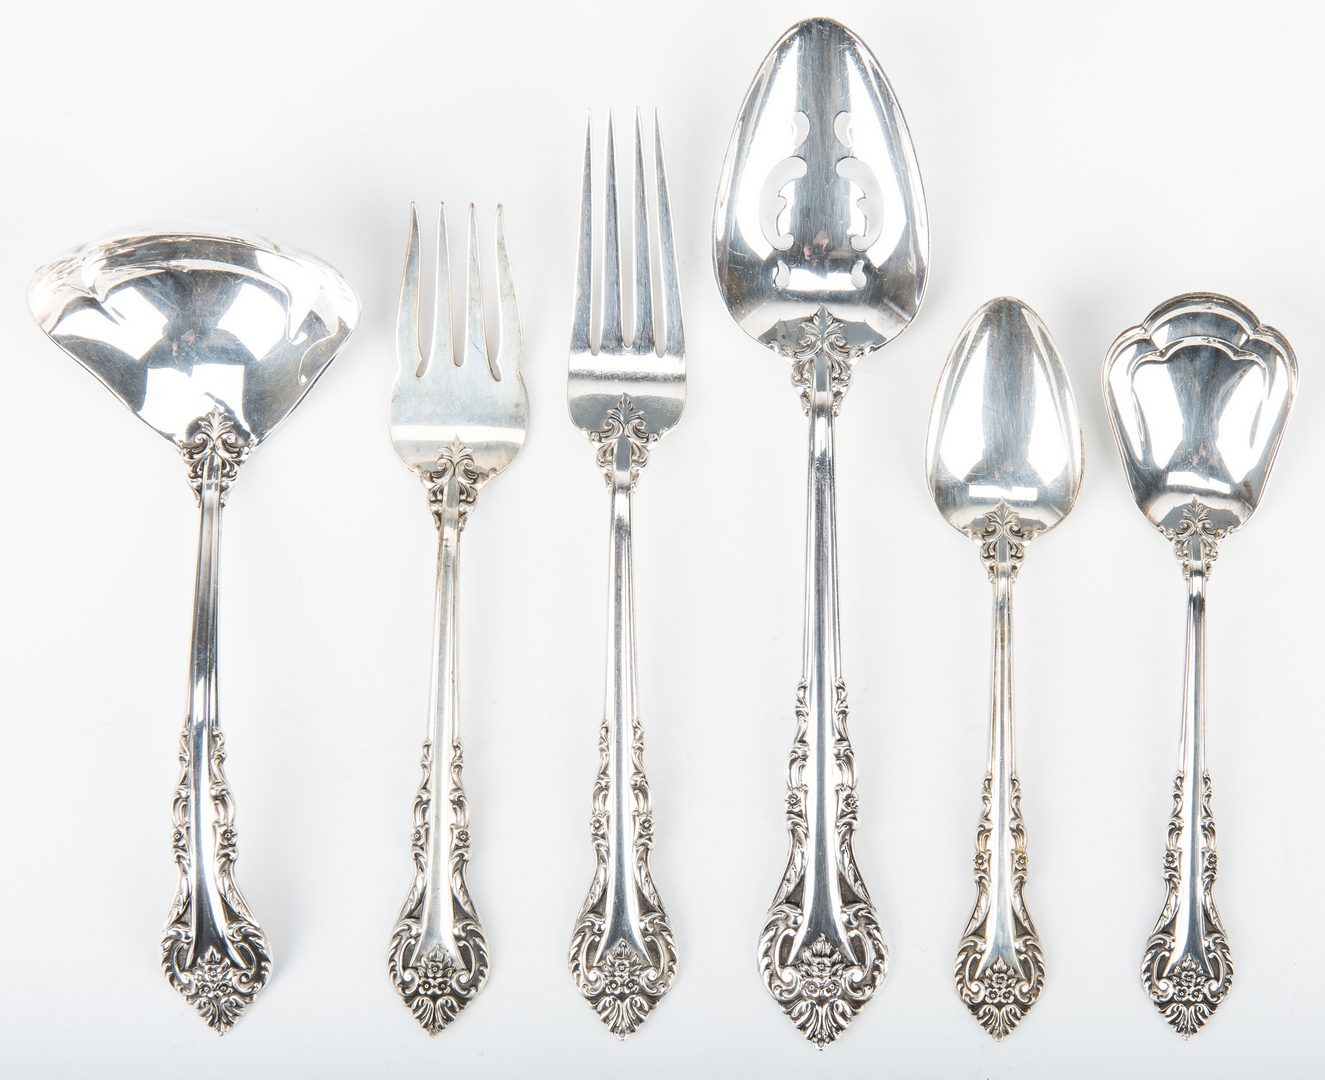 Lot 710: 43 Pcs. International Masterpiece Sterling Silver Flatware